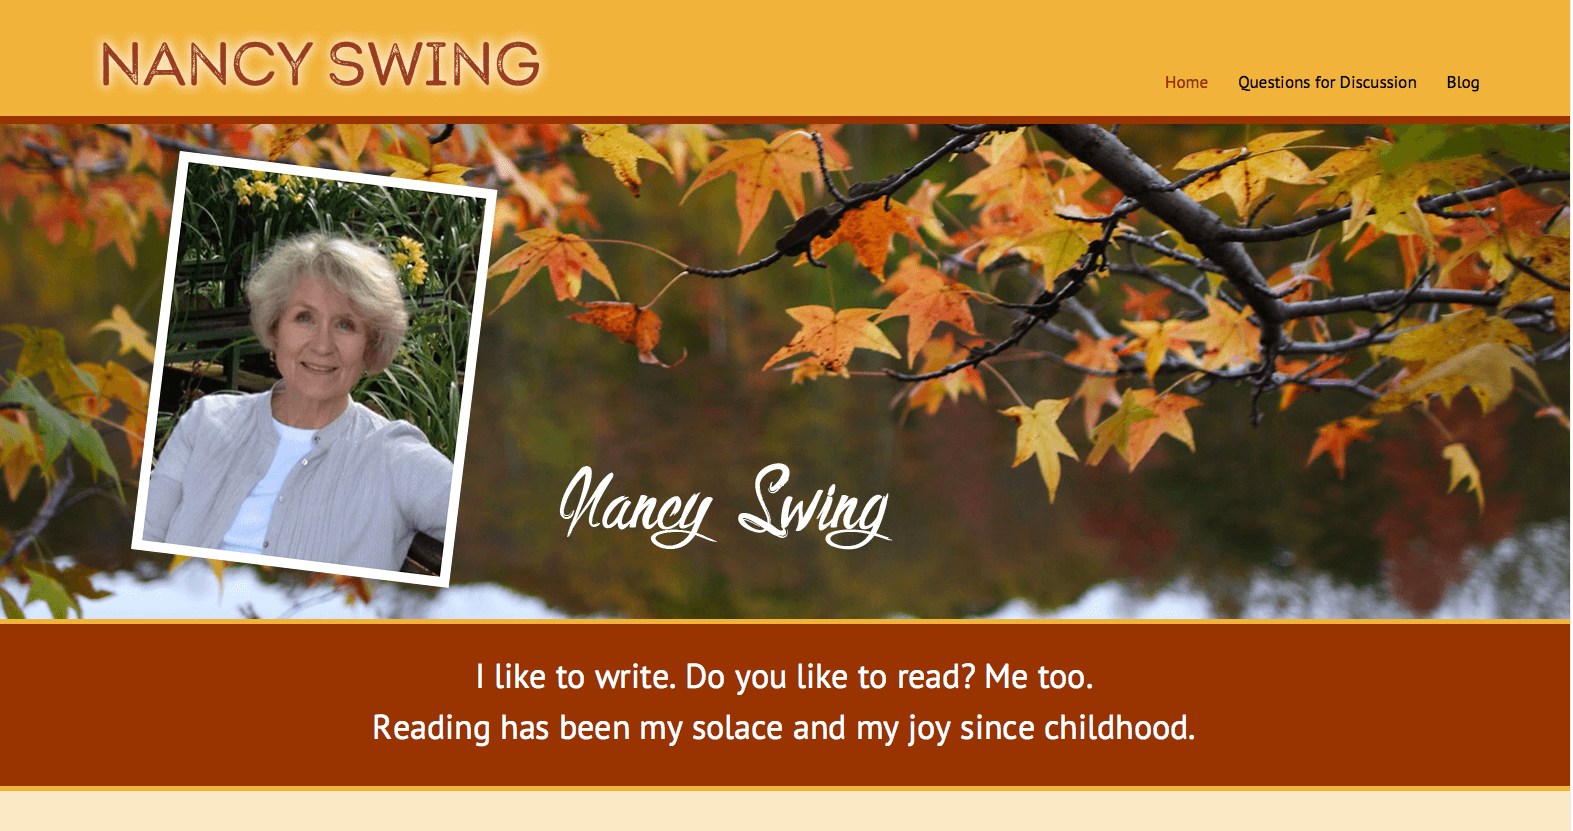 Nancy Swing